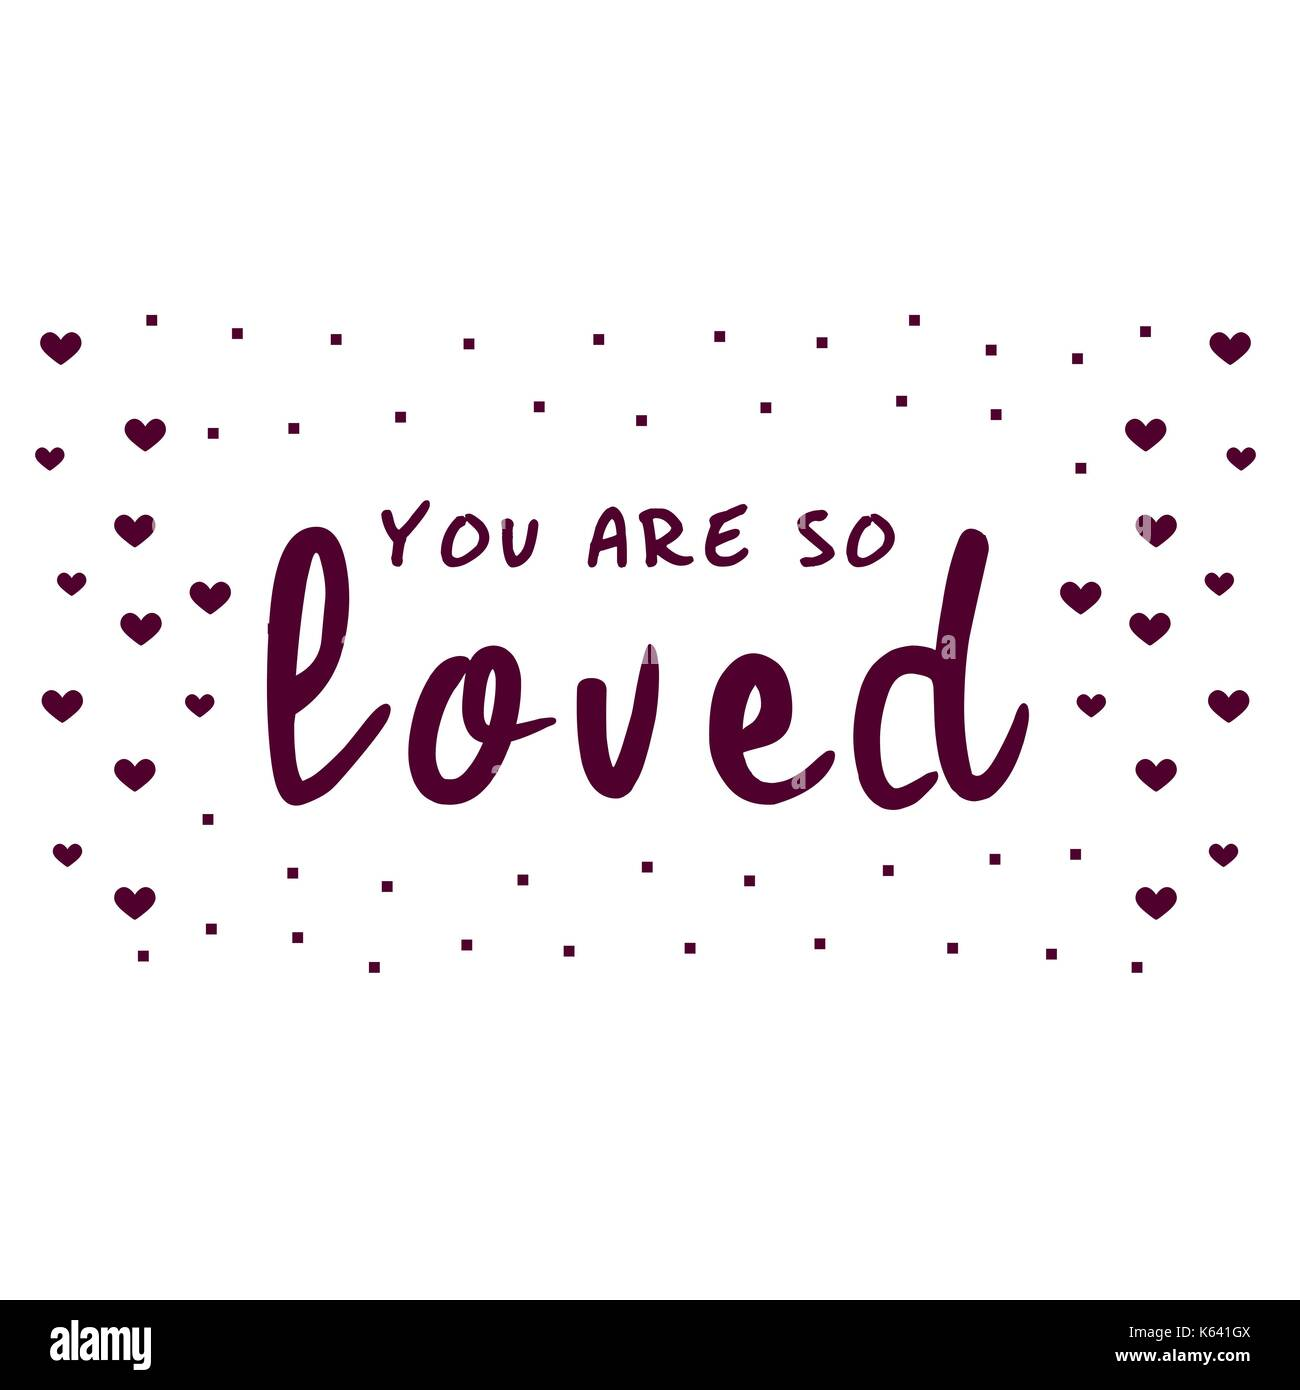 You are so Loved. Love letter for a nursery wall art design, poster, greeting card, printing. - Stock Vector